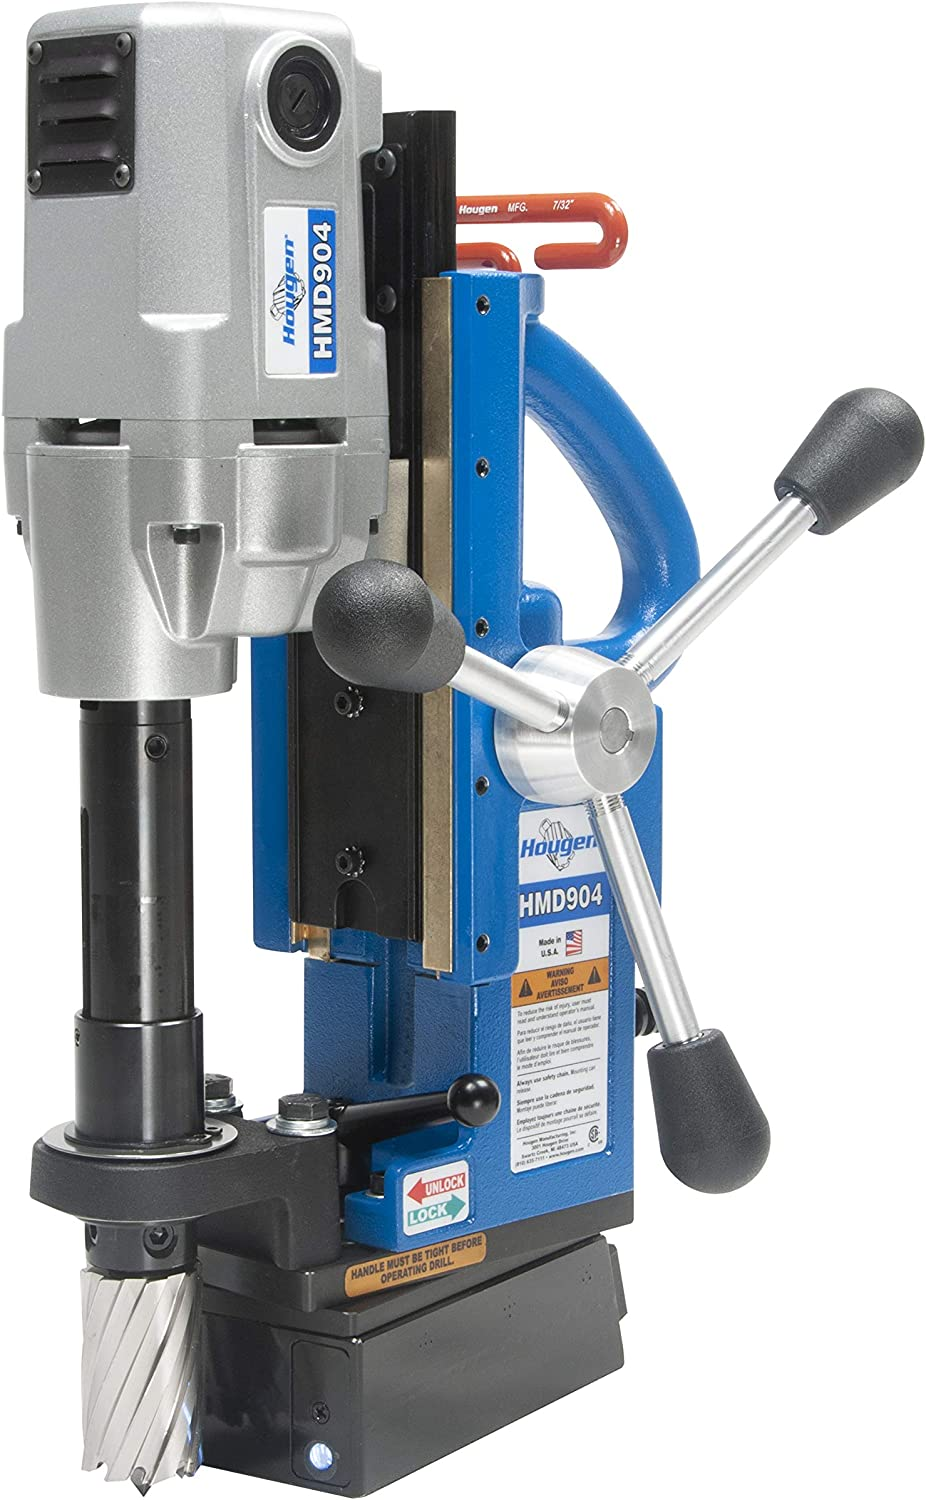 Best Magnetic Drill Press: Hougen HMD904S 115-Volt Swivel Base Magnetic Drill